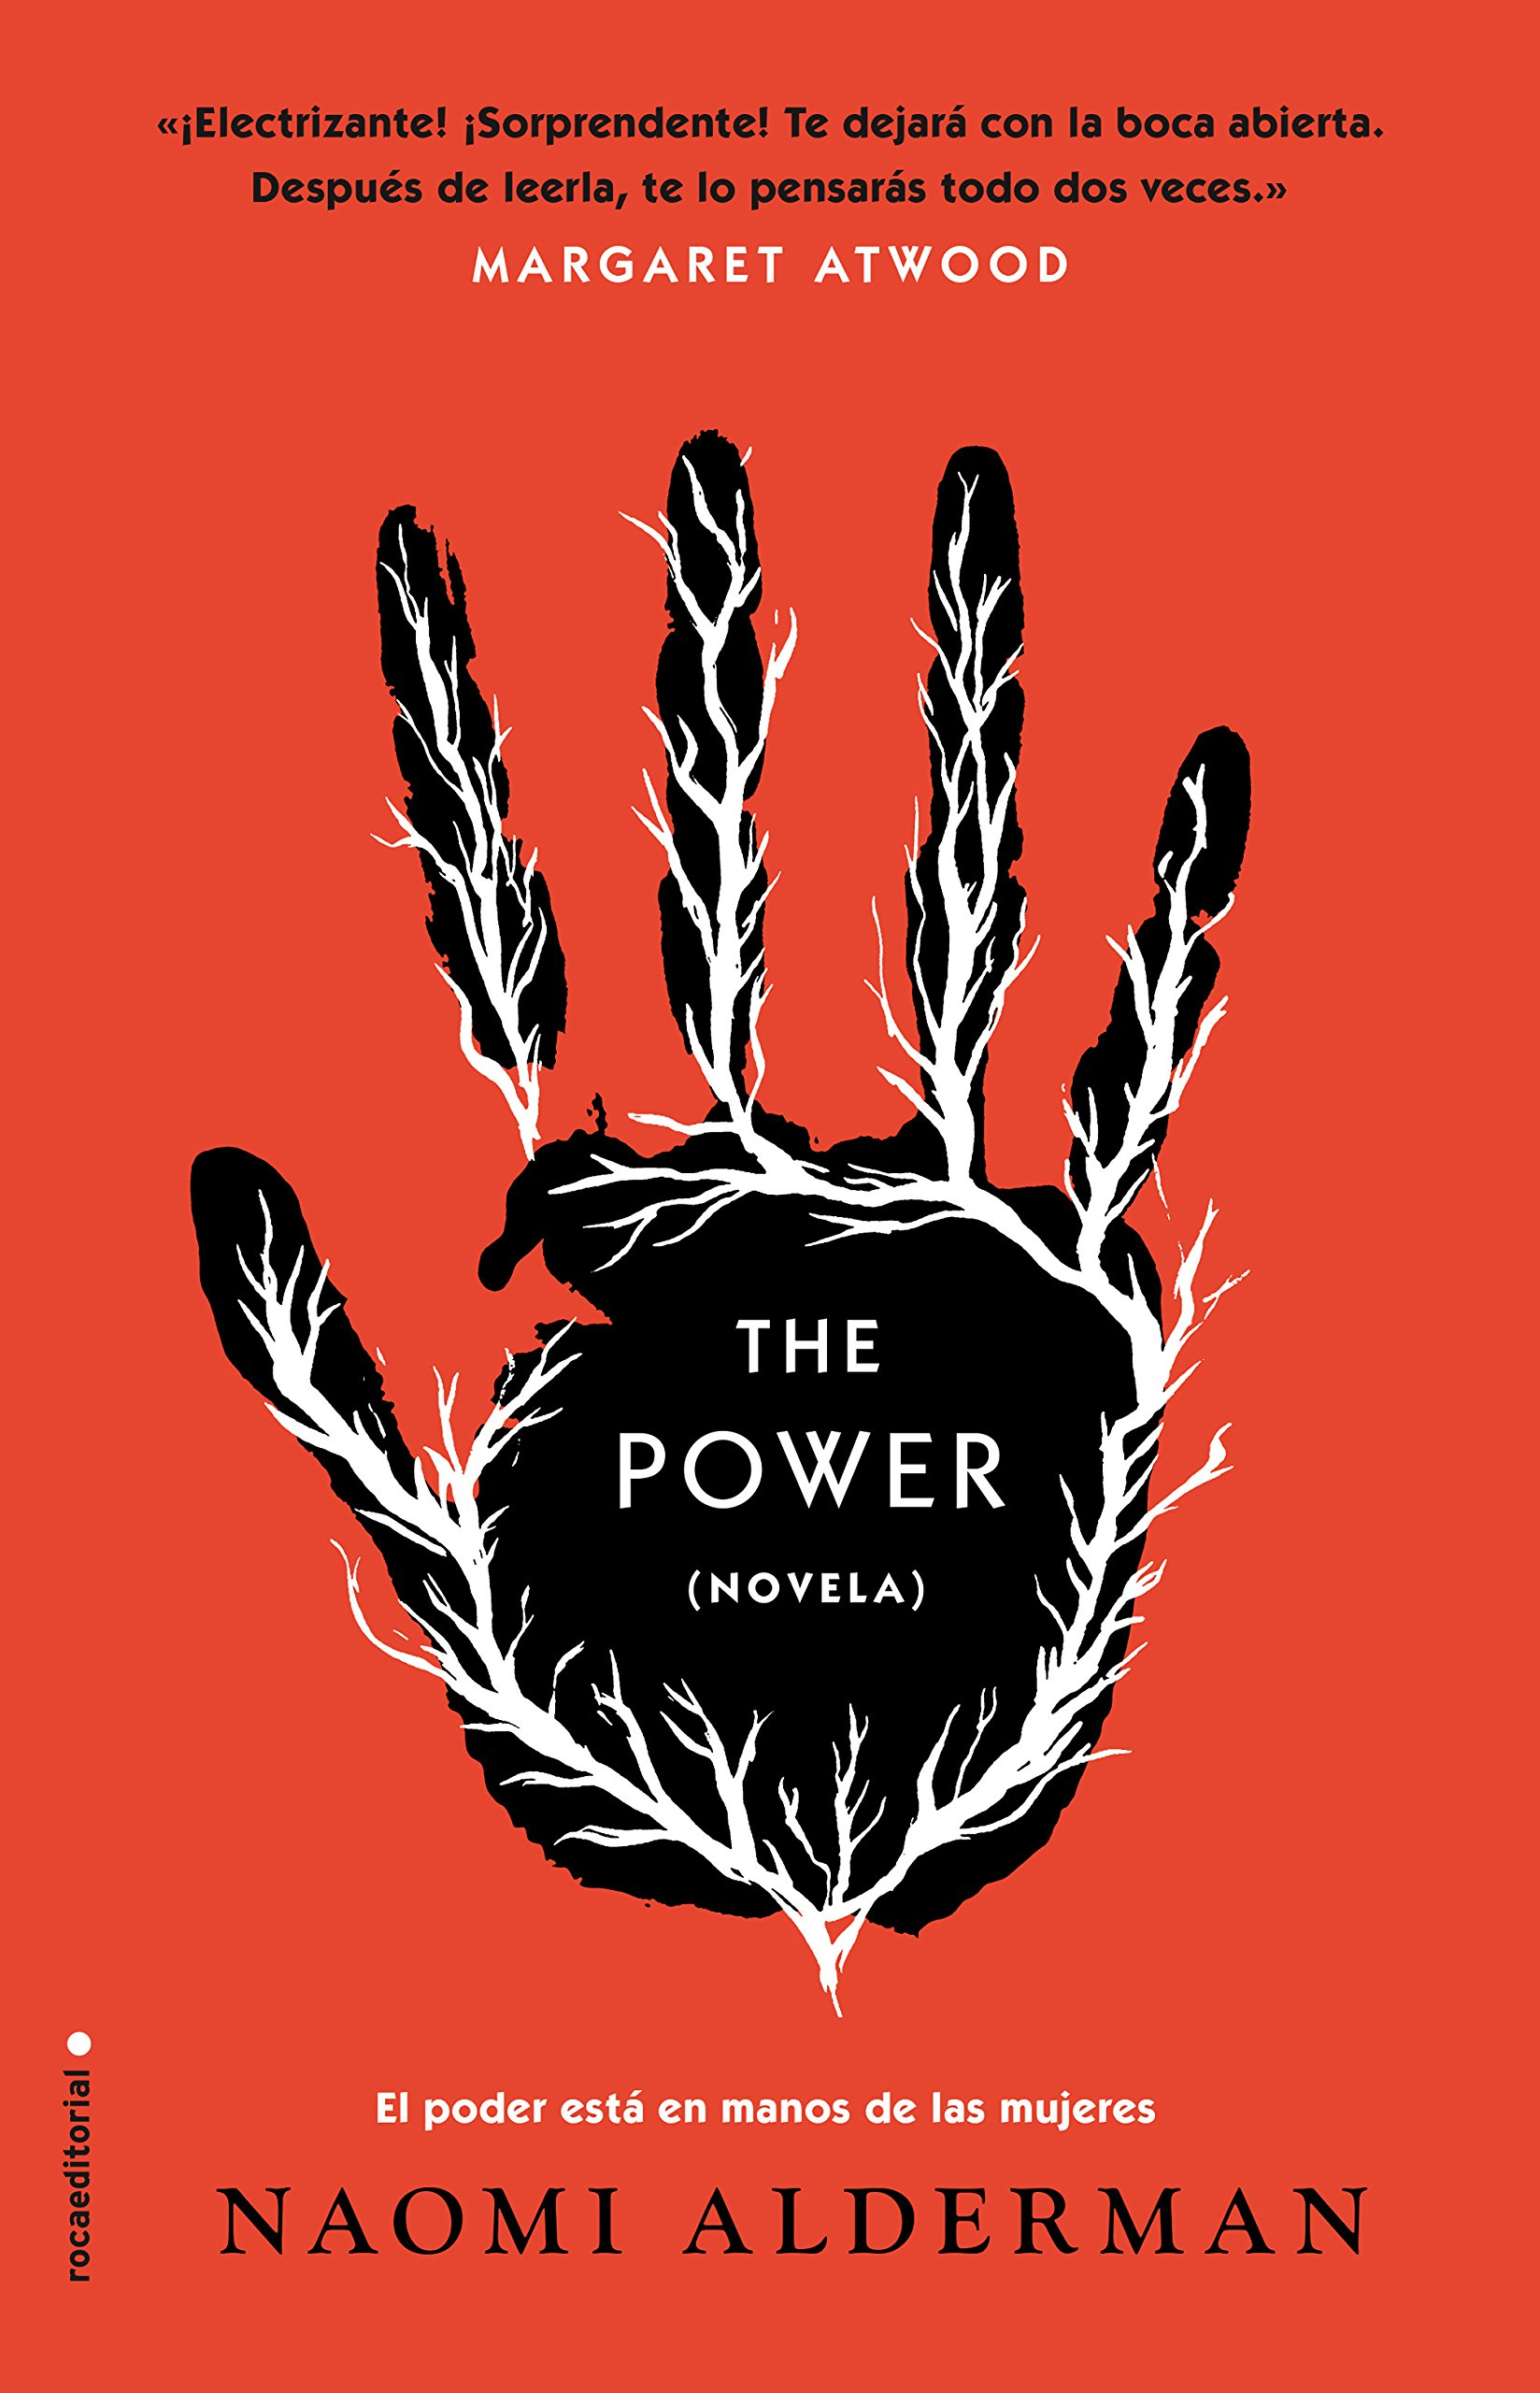 The Power (Novela) Tapa dura – 22 jun 2017 Naomi Alderman Ana Guelbenzu Roca Editorial 8416700672